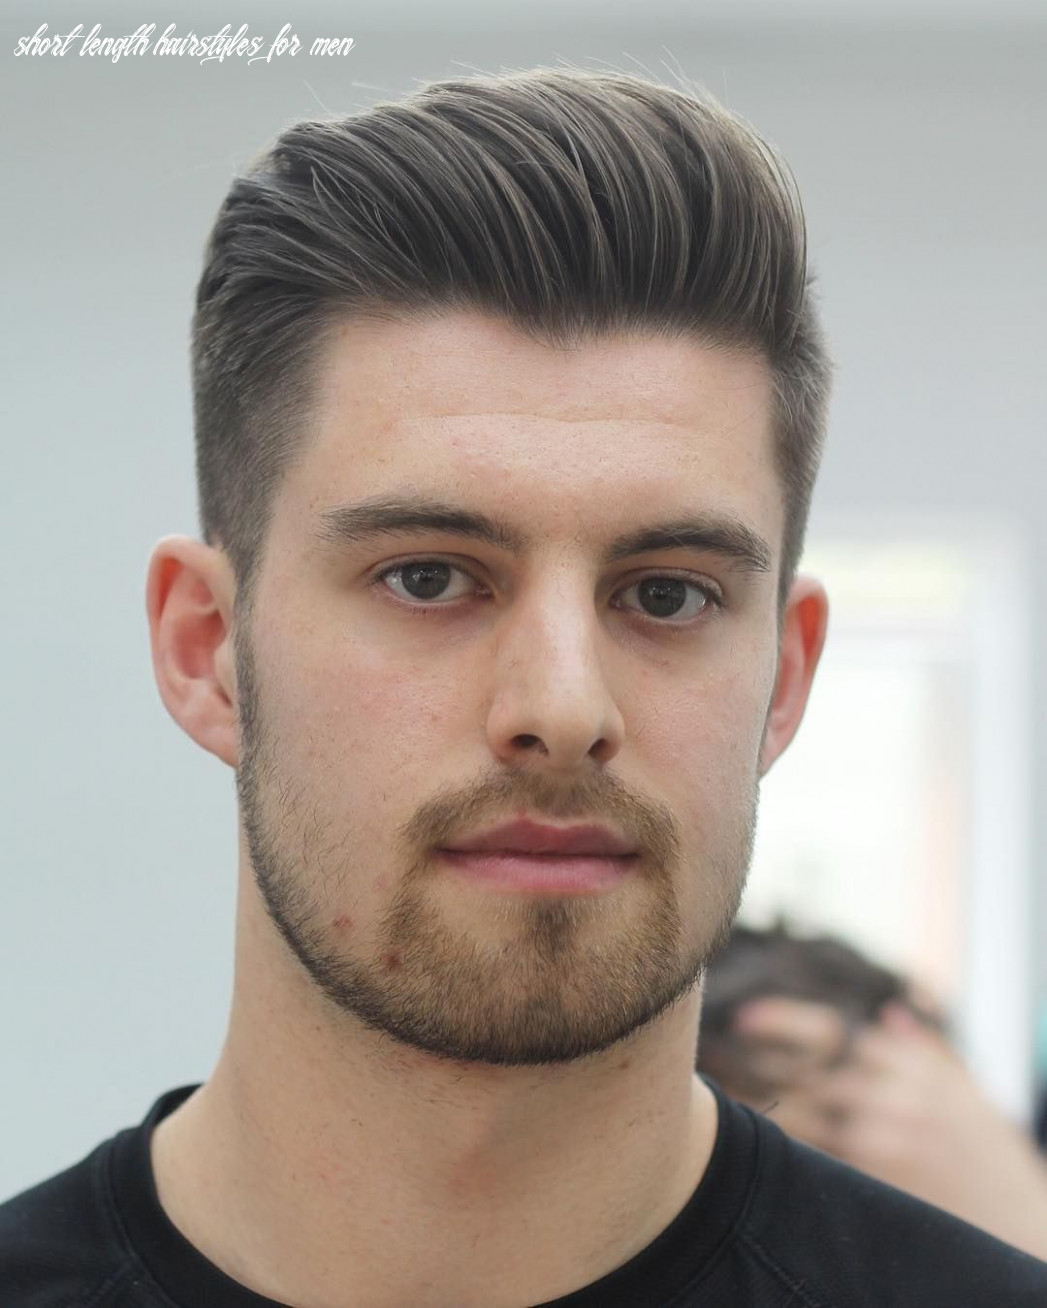 Pin on haircuts short length hairstyles for men